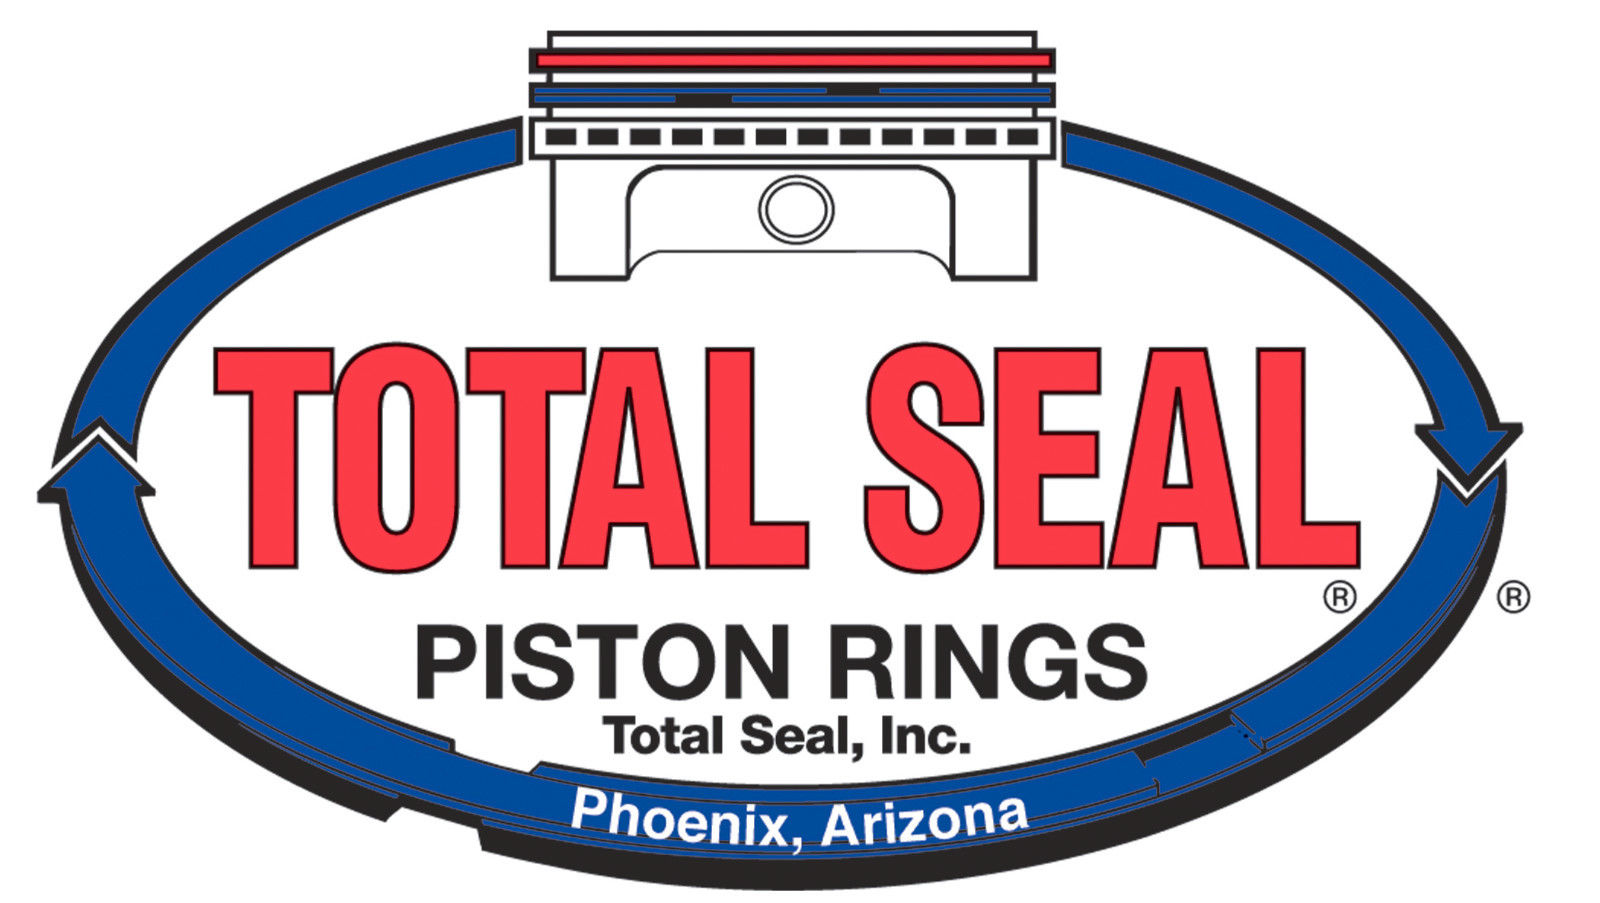 Total Seal CR3690-35 Classic Race Rings 4.030